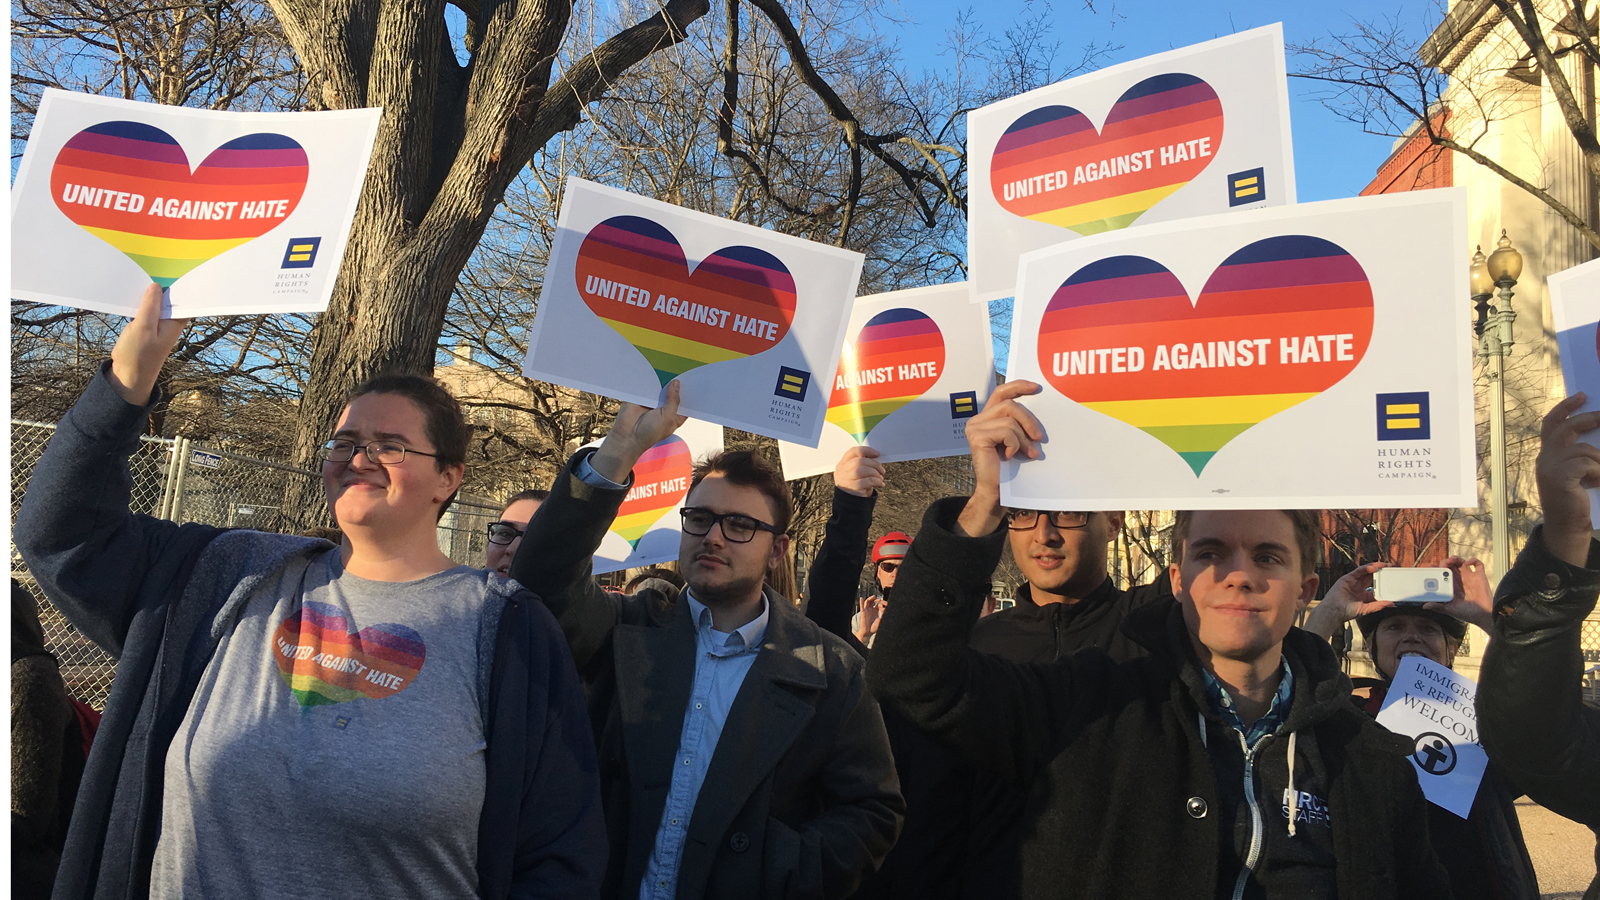 Five Ways HRC is Responding to Trump's Latest Attacks on LGBTQ Immigrants, Refugees & Asylum Seekers